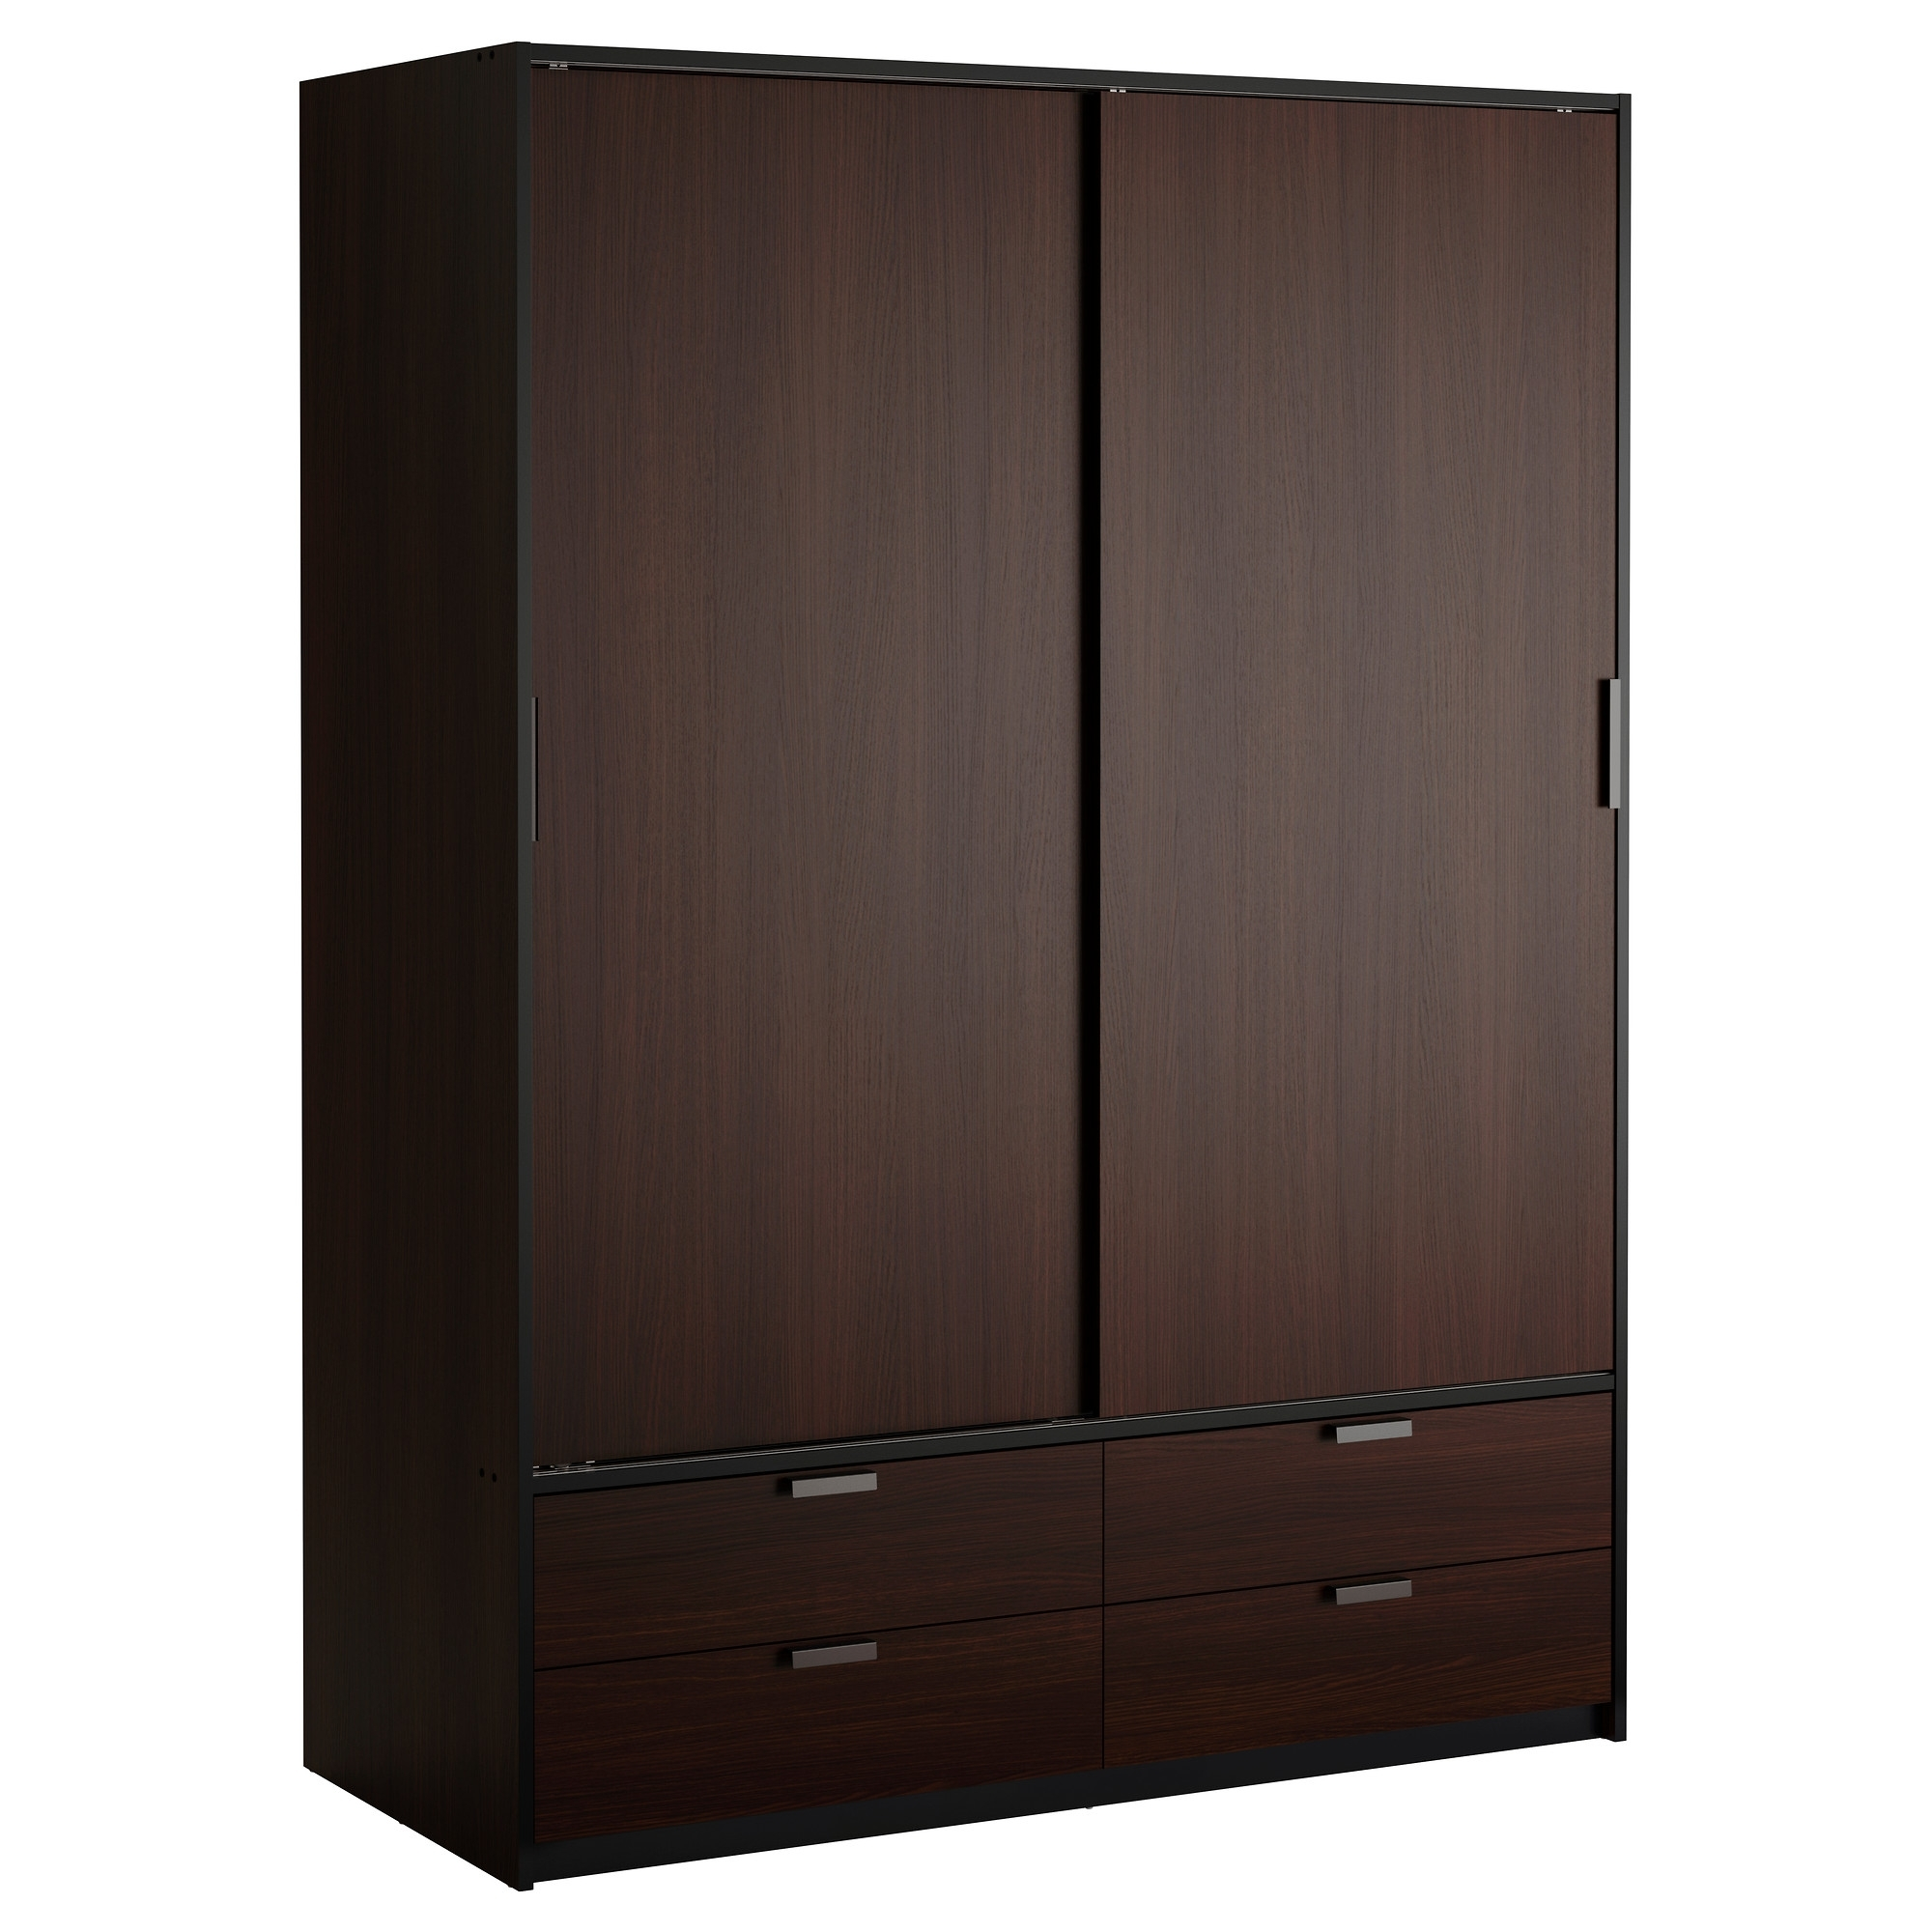 Recent Dark Wood Wardrobes For Possible Wardrobe Solution – Trysil Wardrobe W Sliding Doors/ (View 11 of 15)